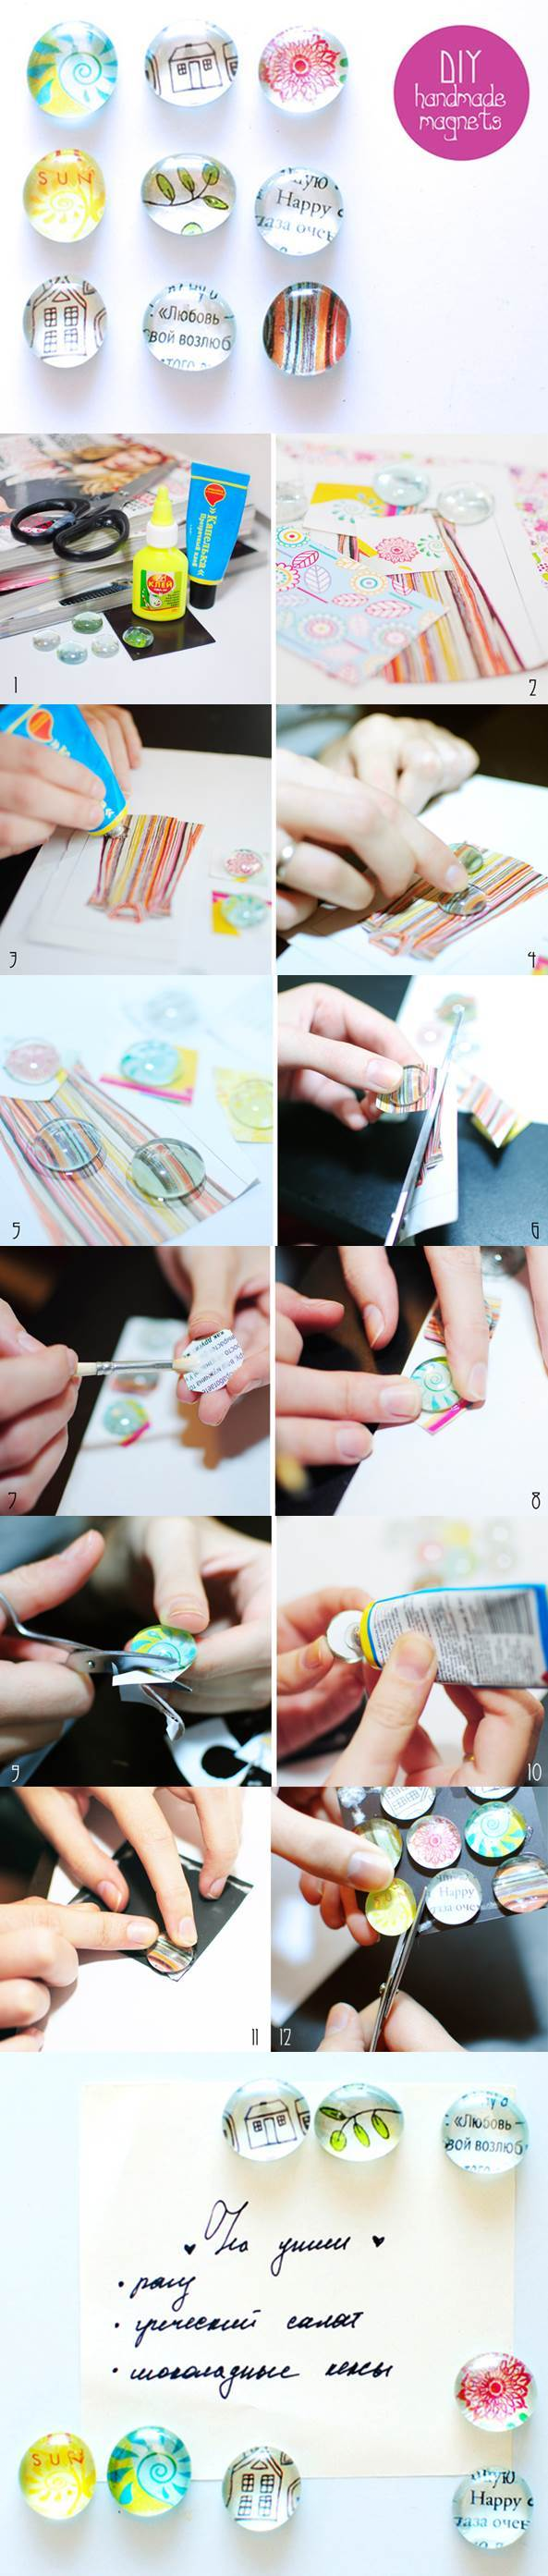 DIY Beautiful Fridge Magnets 2